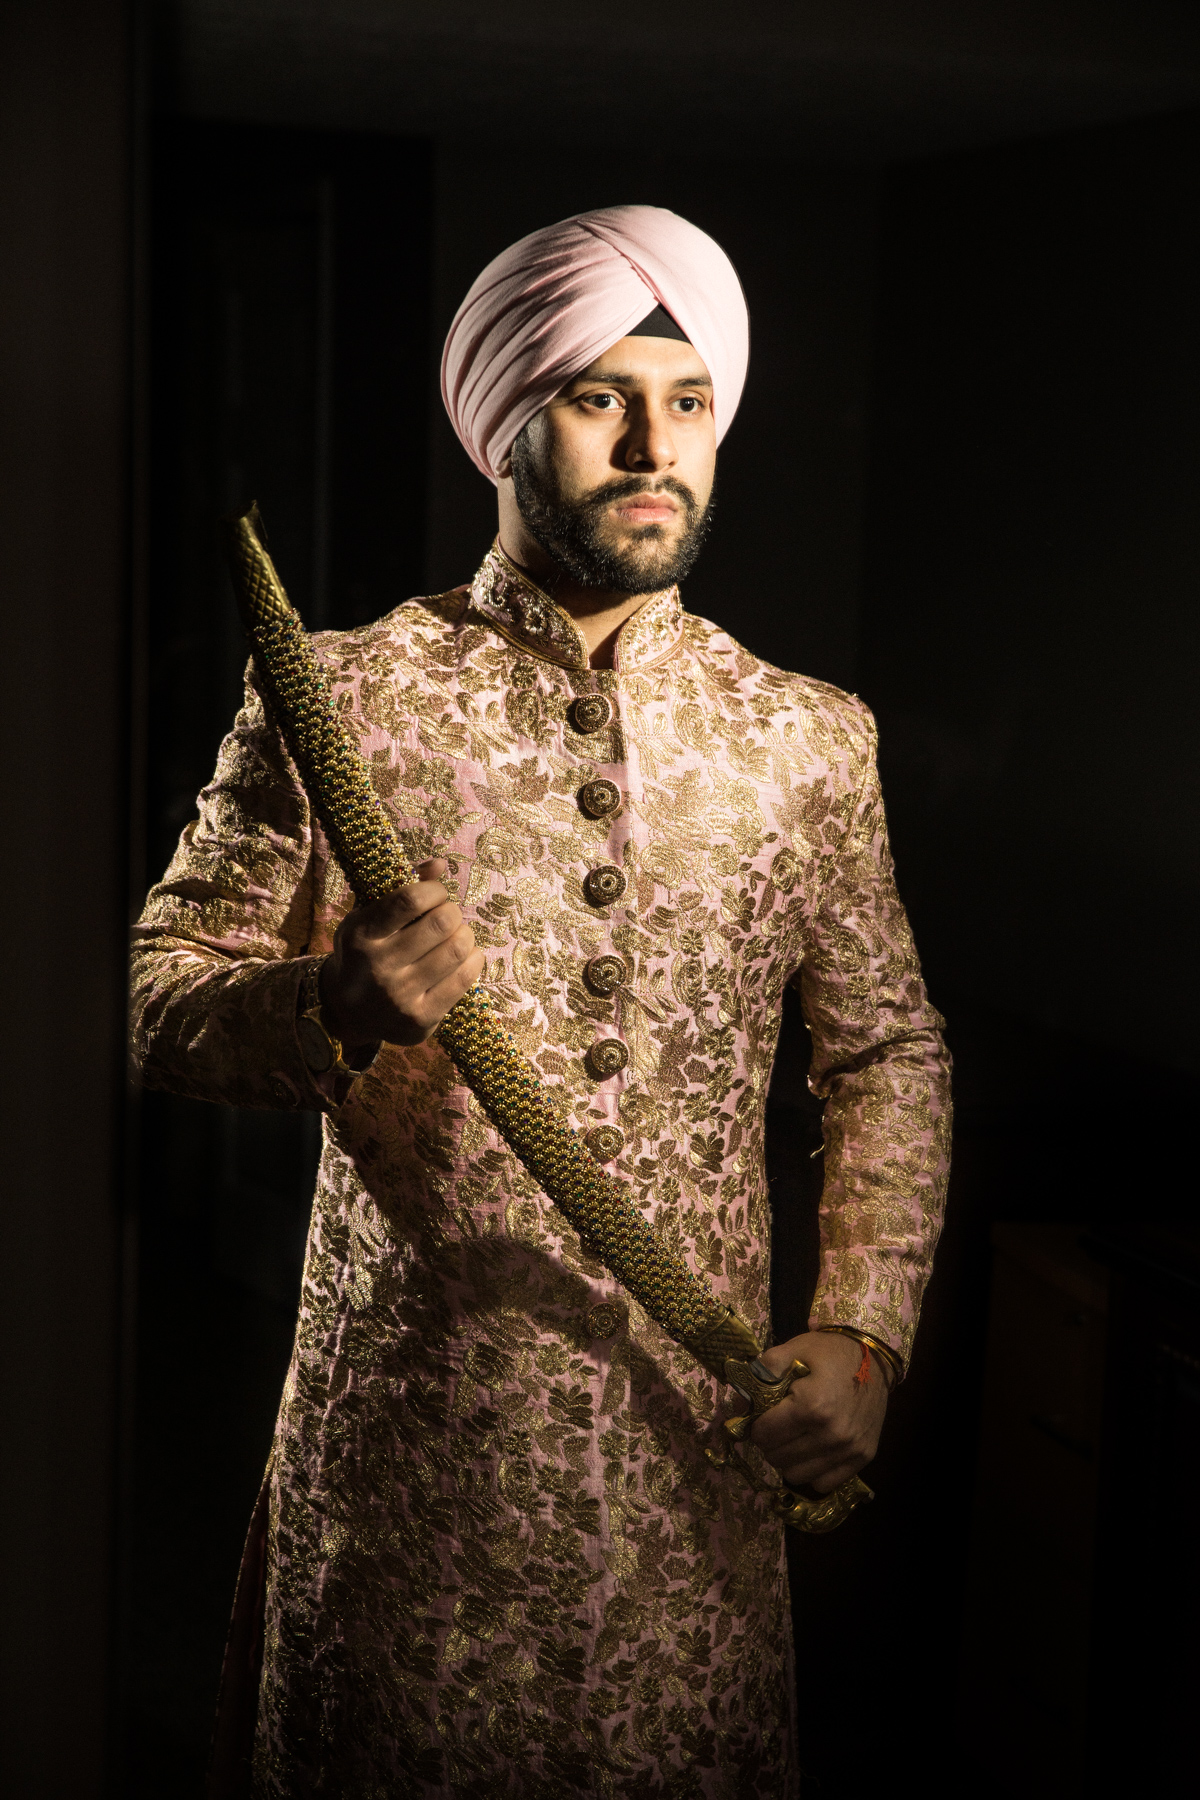 indian-south-asian-wedding-getting-ready-details-23.jpg